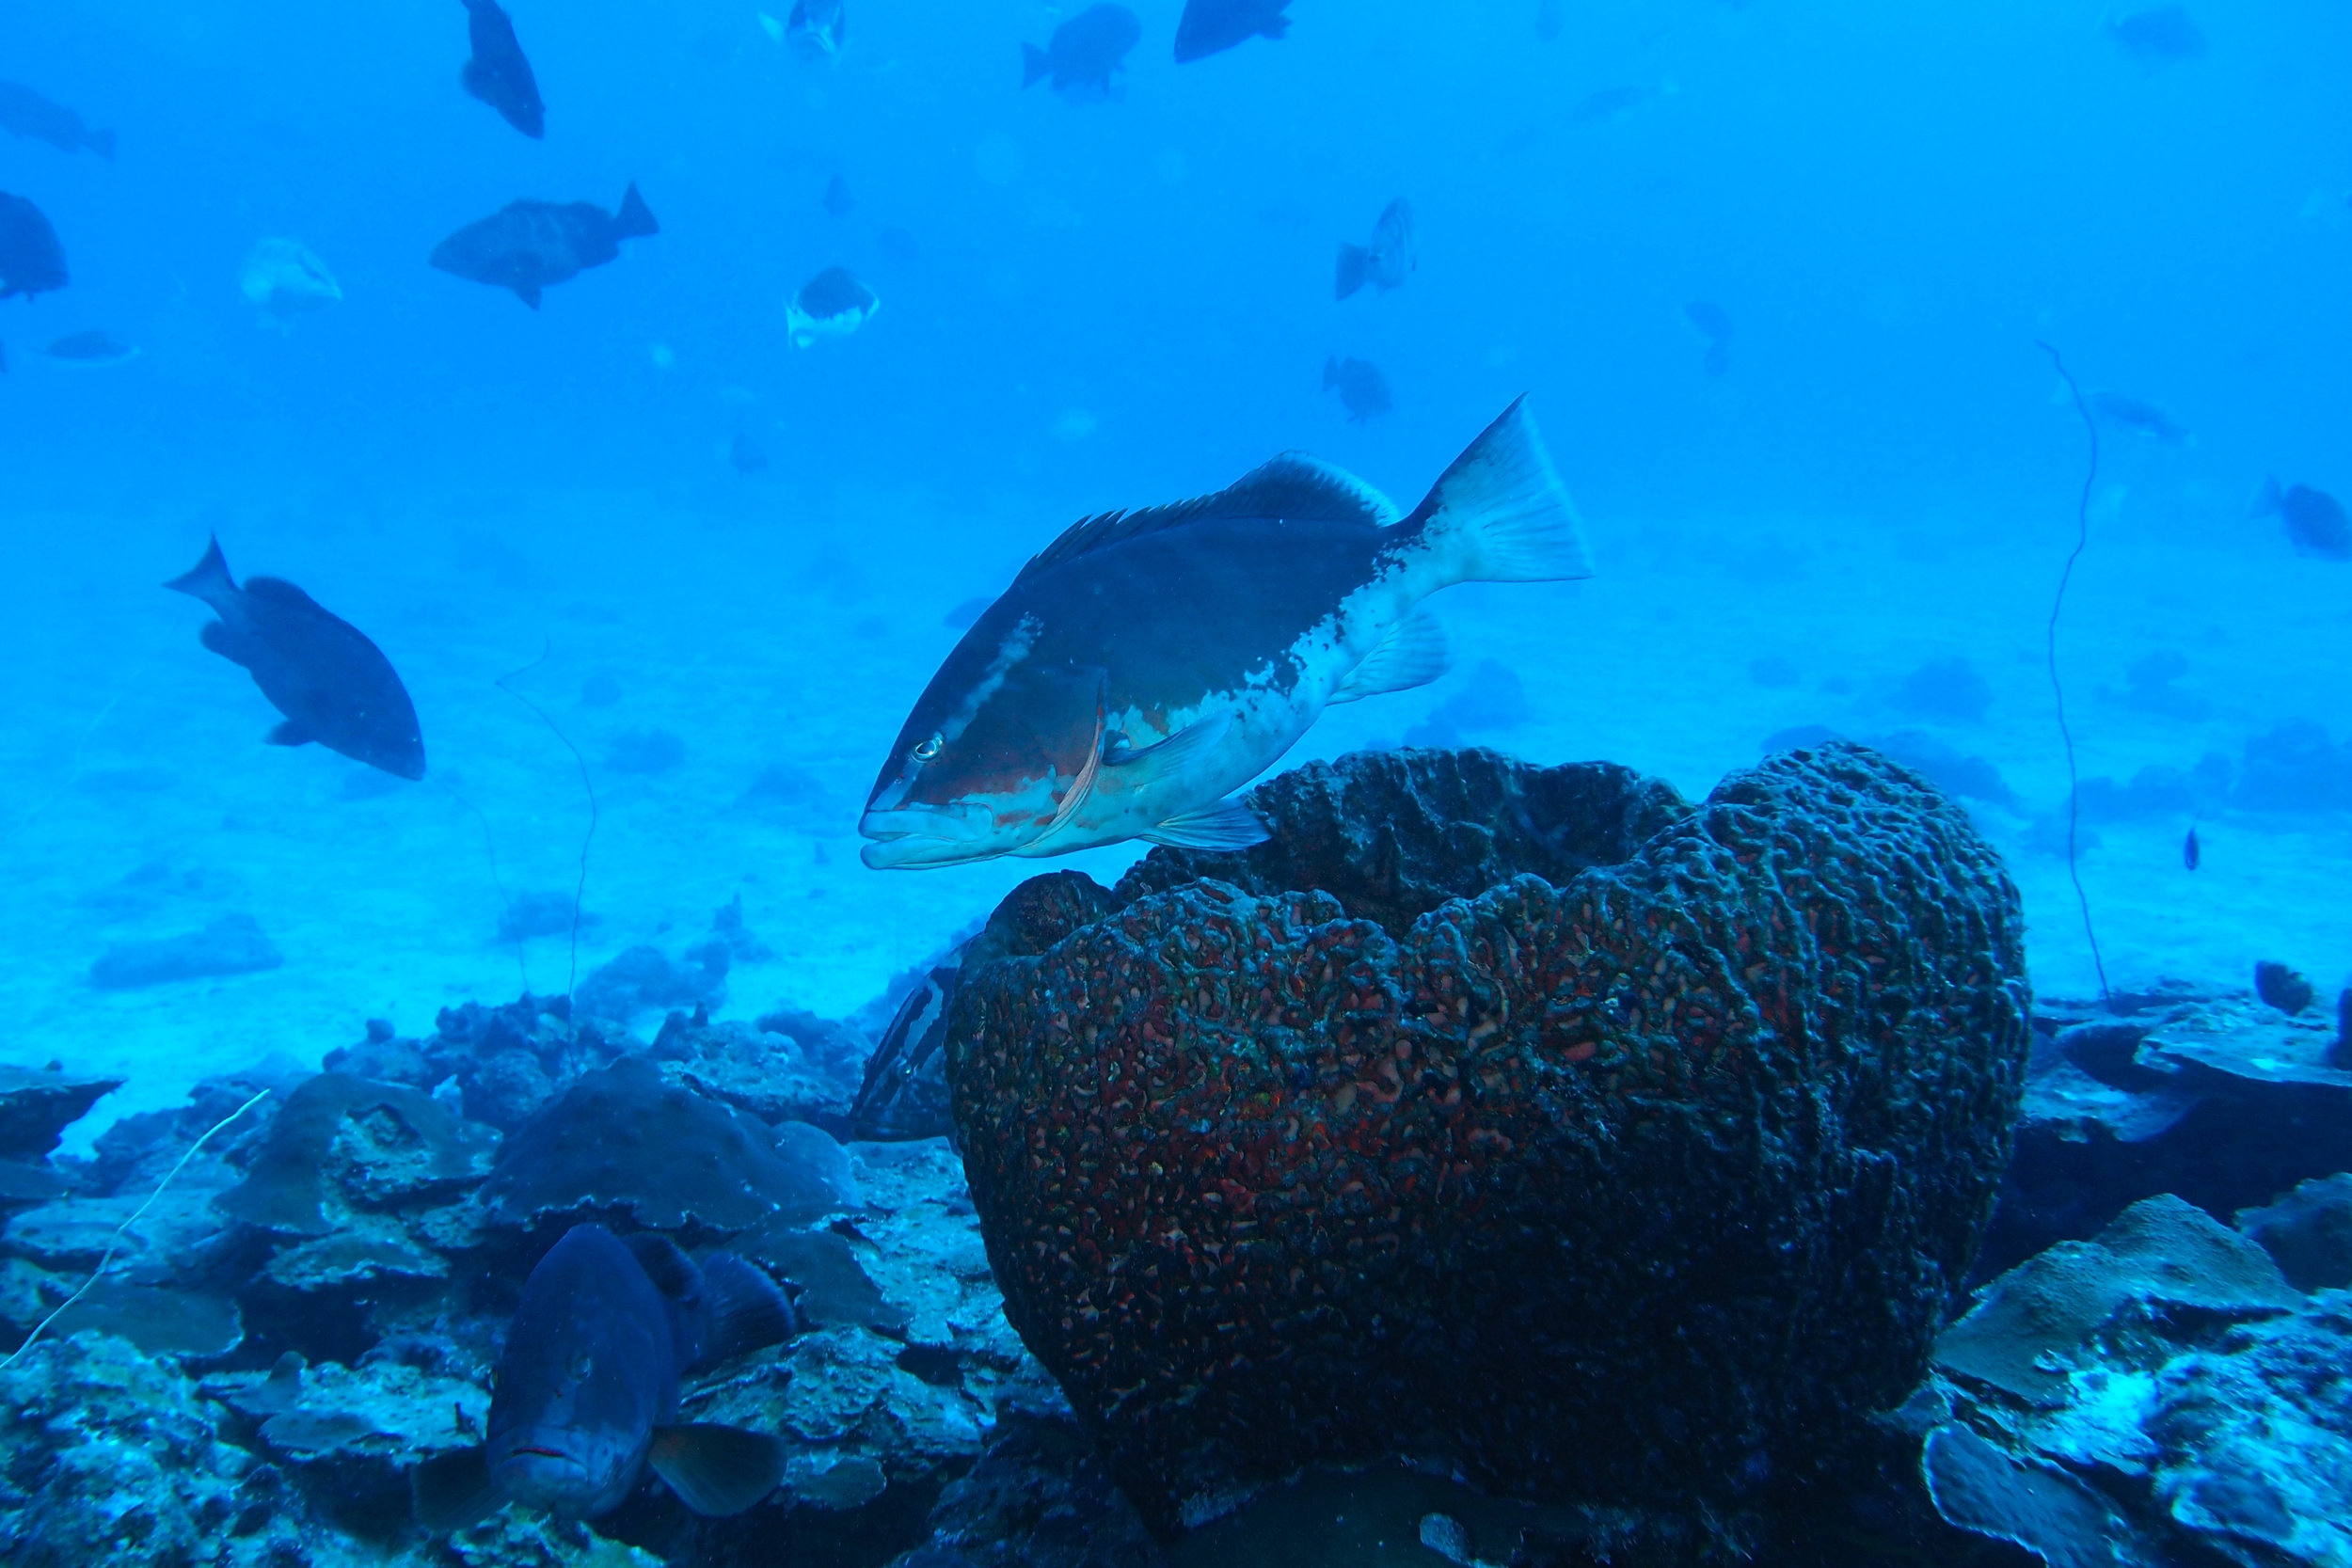 The number of Nassau grouper showing up at the spawning aggregation site has continued to increase and is beleived to be up to at least 400 fish. In February 2018 over 300 fish were counted in one large group, which is the first time such a large group of Nassau grouper has ever been seen at the Grammanik Bank. Photo courtesy of Jason Quetel